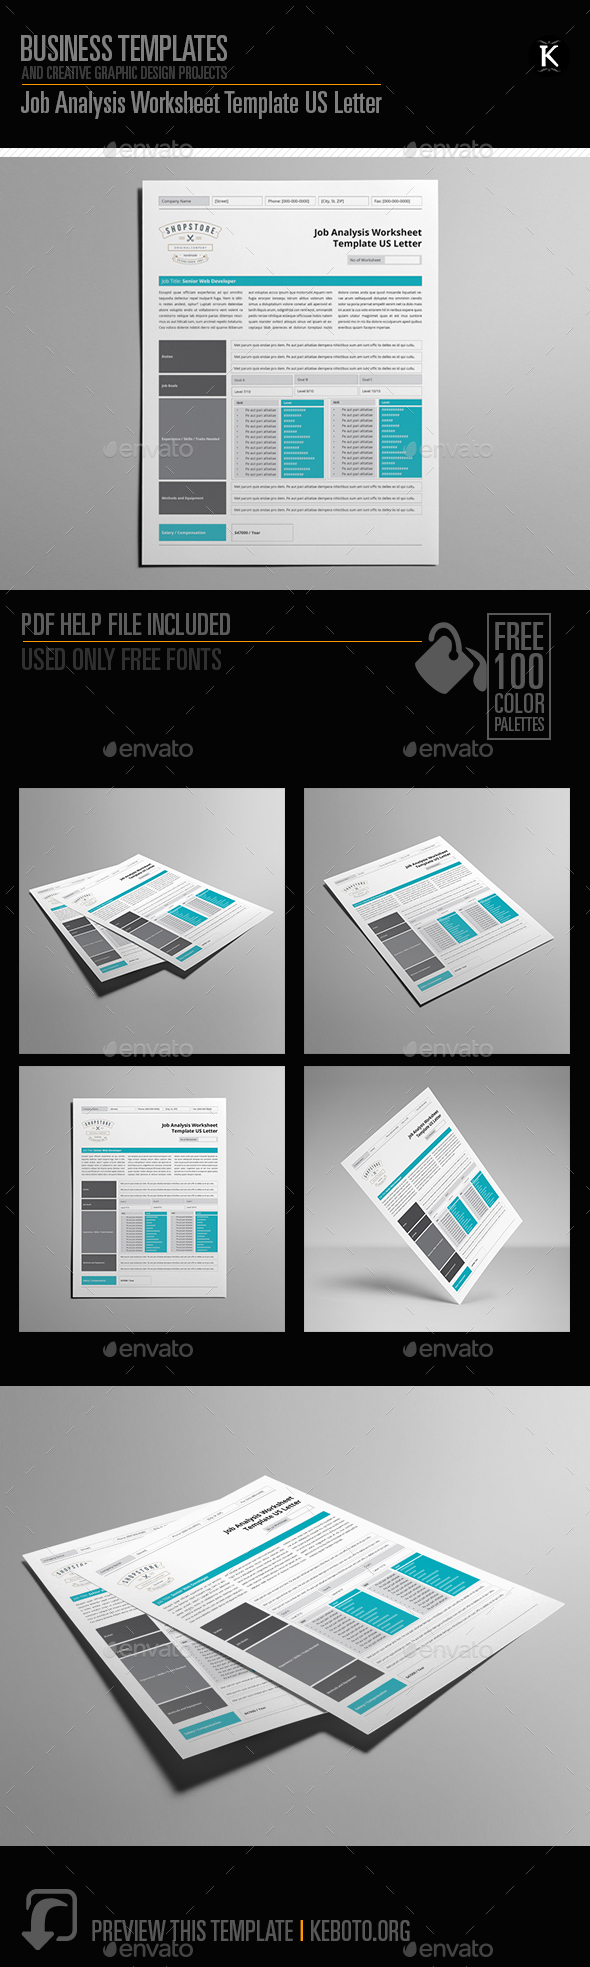 Job Analysis Worksheet Template US Letter by Keboto – Job Analysis Template